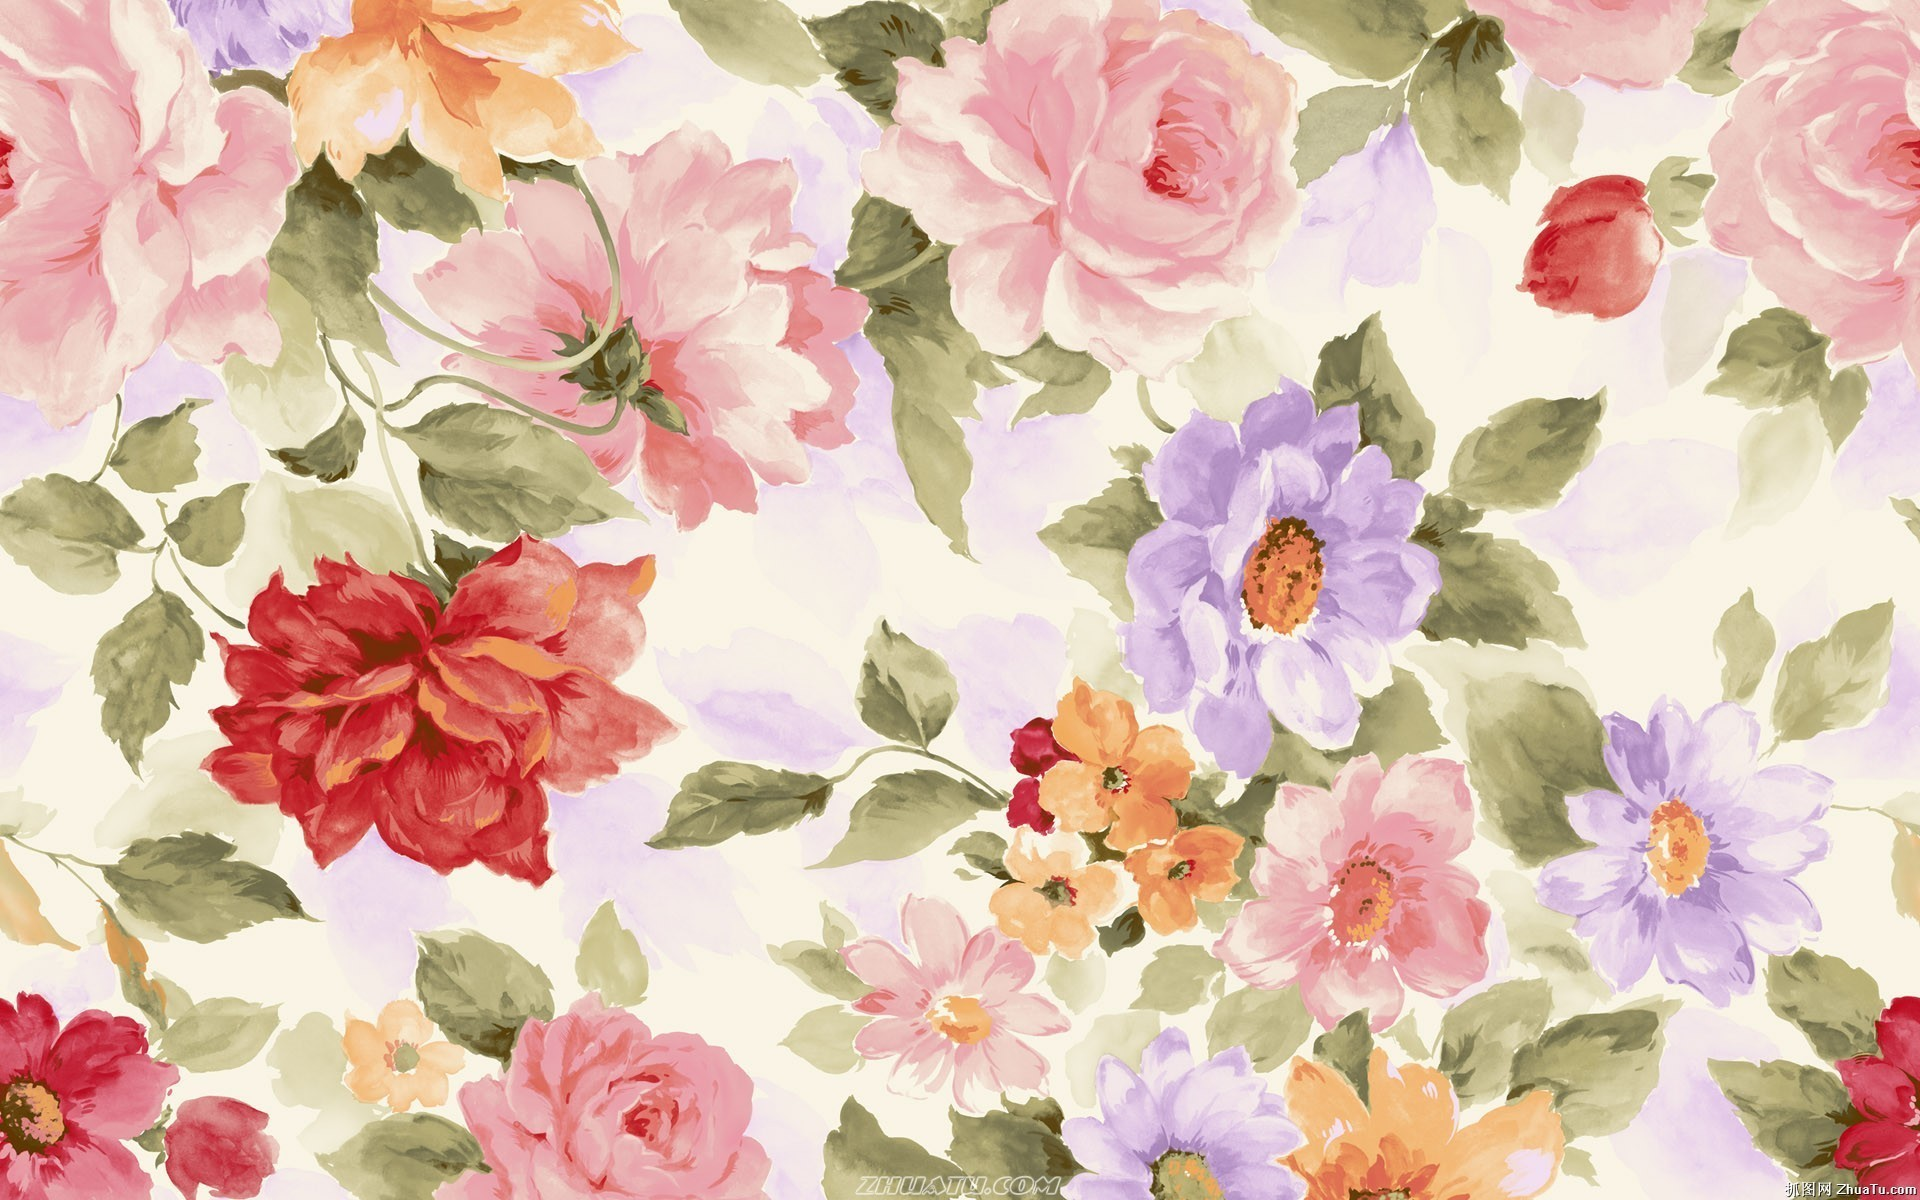 Watercolor Flowers Wallpaper 51 Images